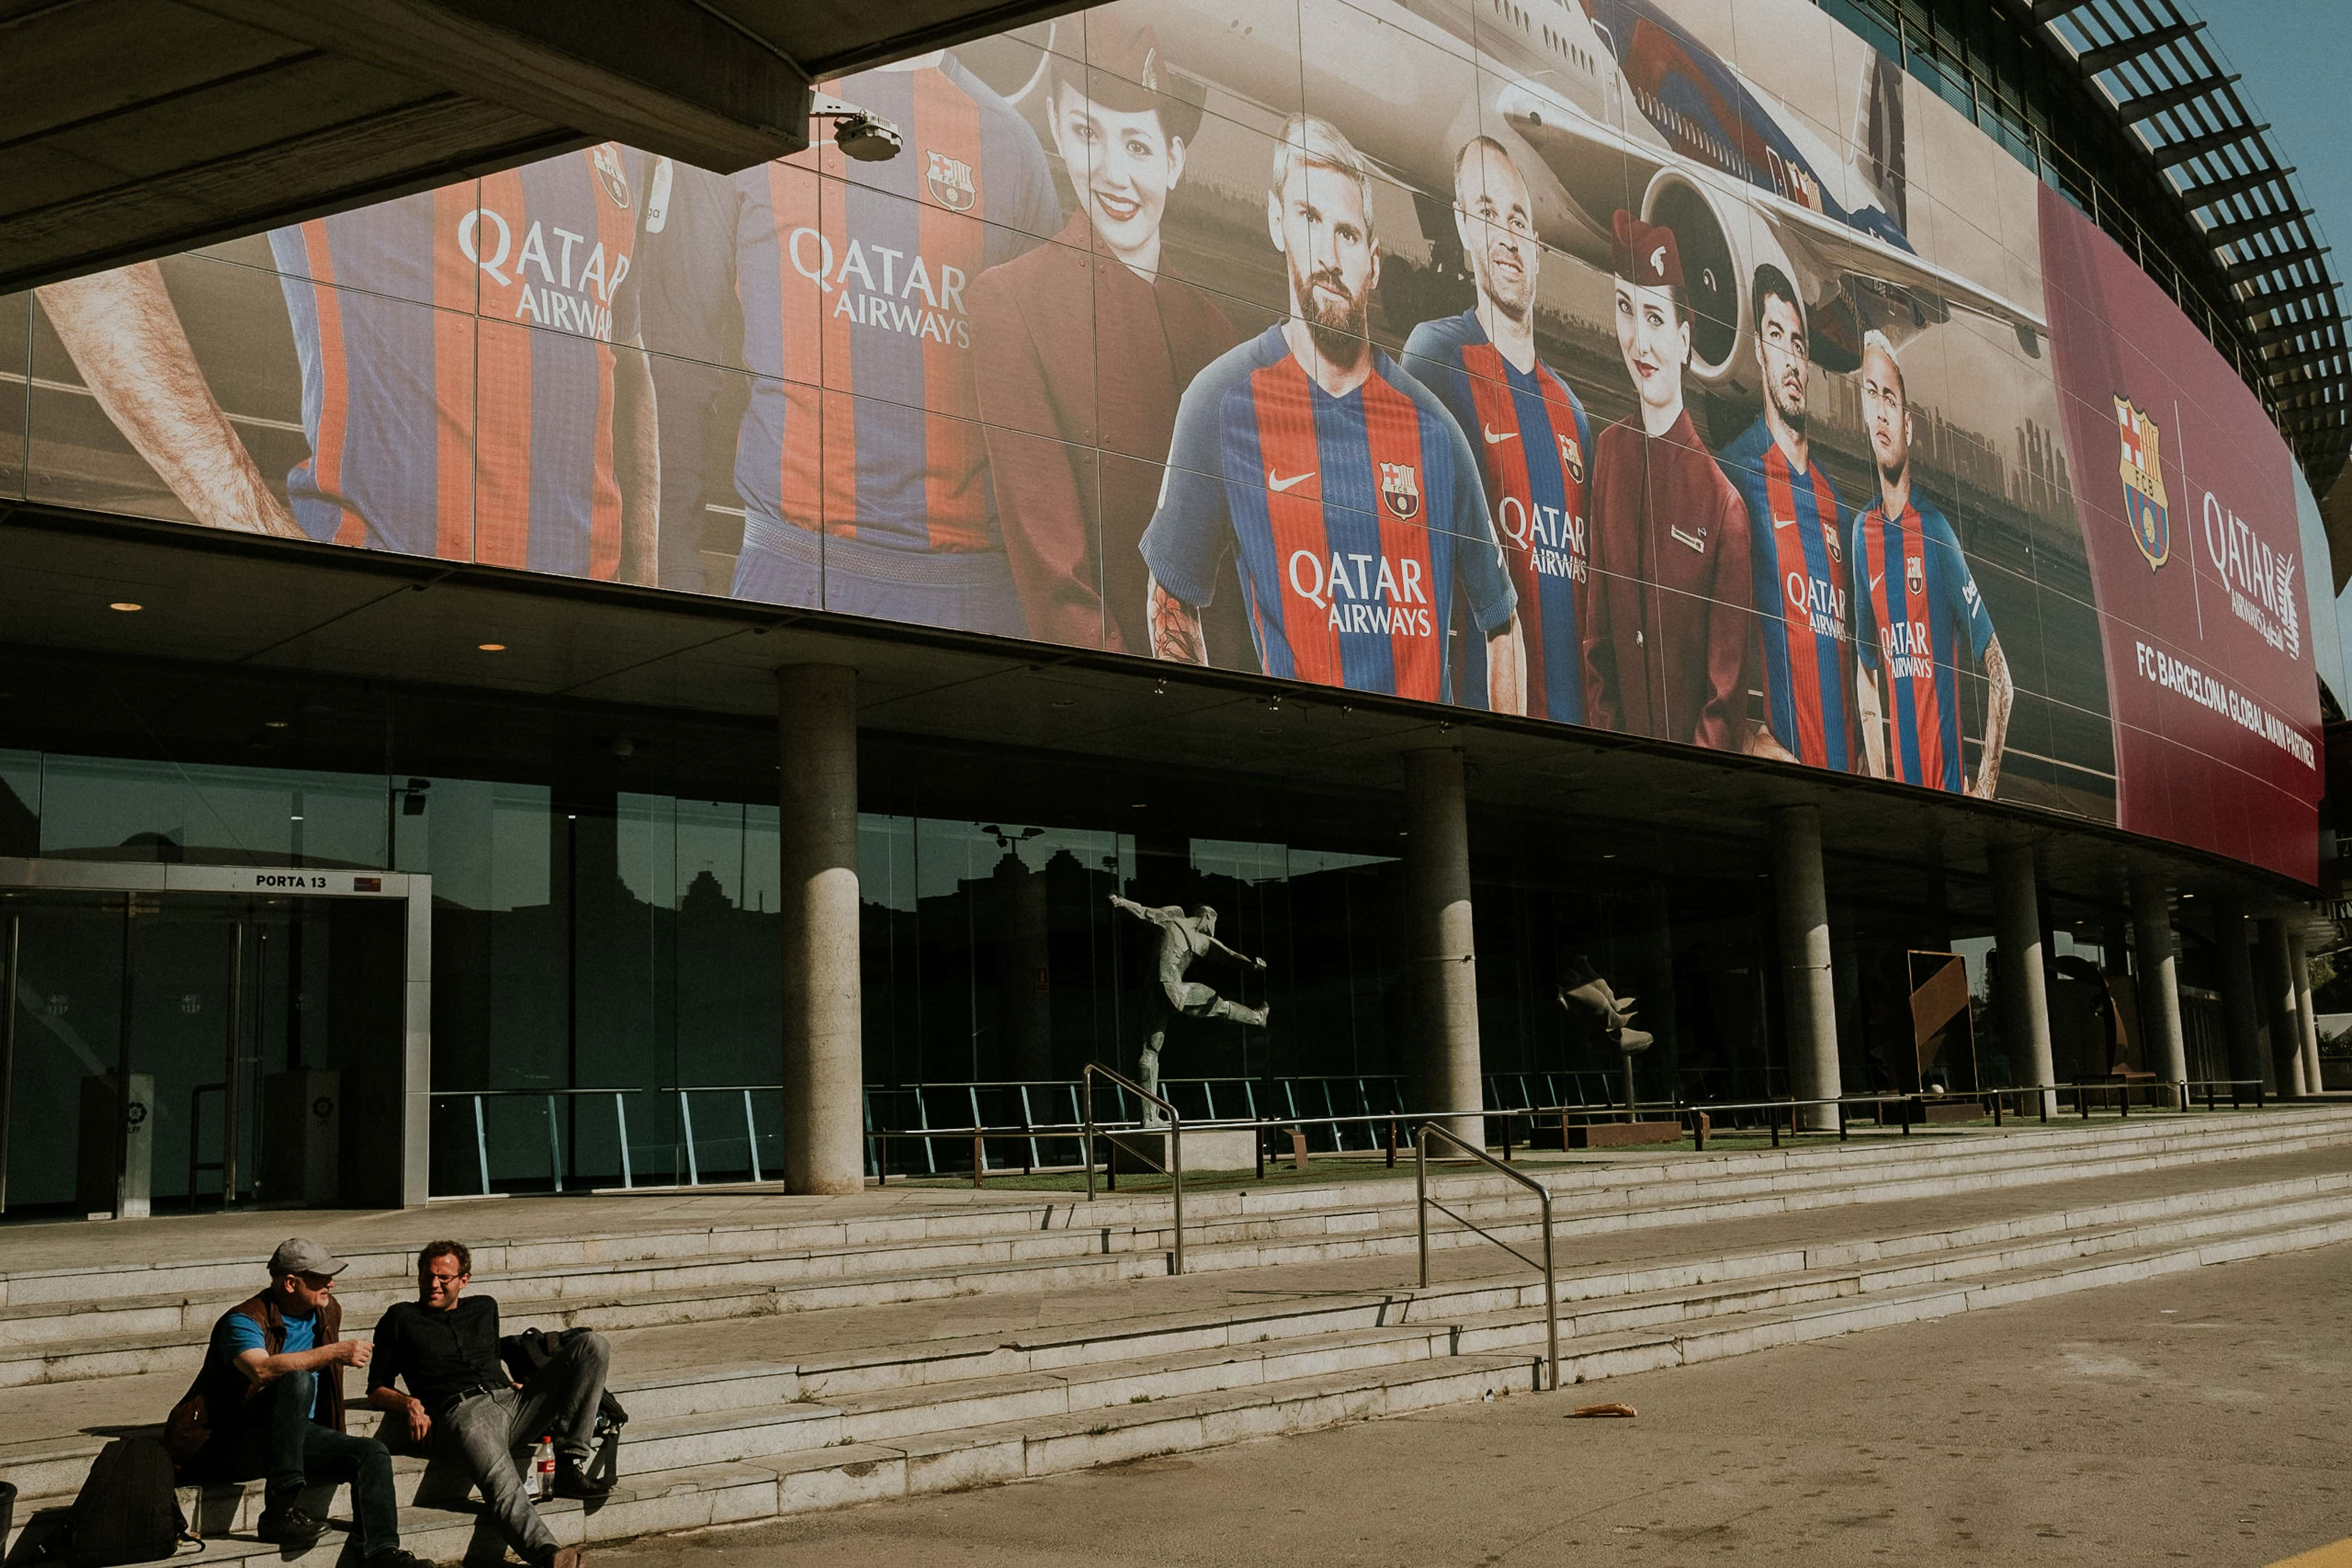 Two men lounging on the steps of Camp Nou